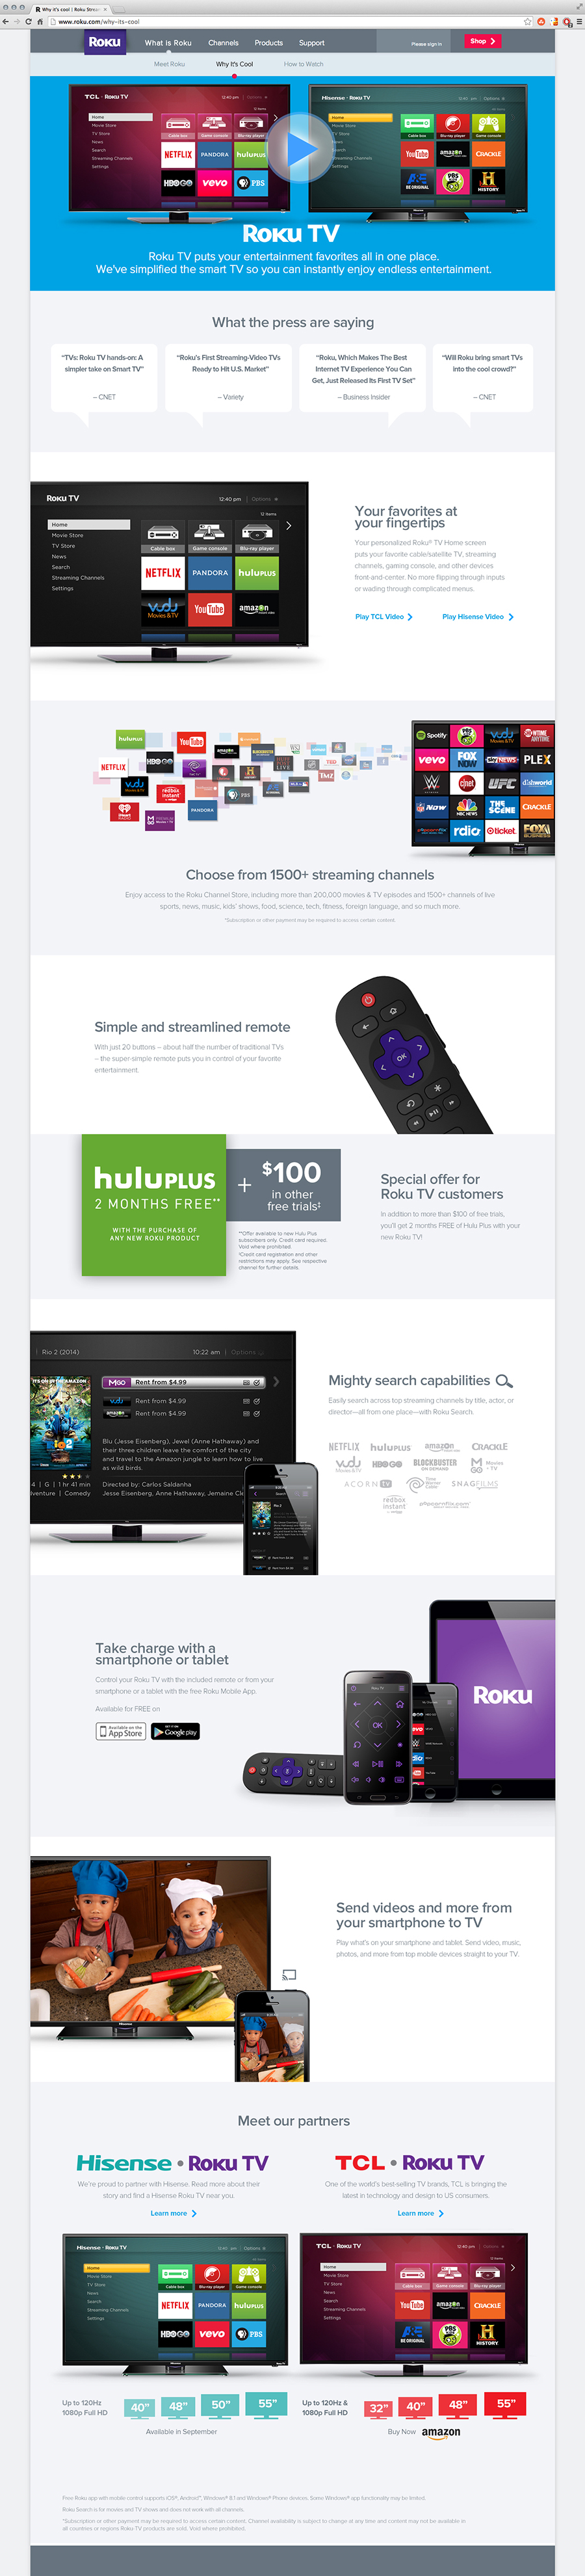 Roku-TV-Launch-Site